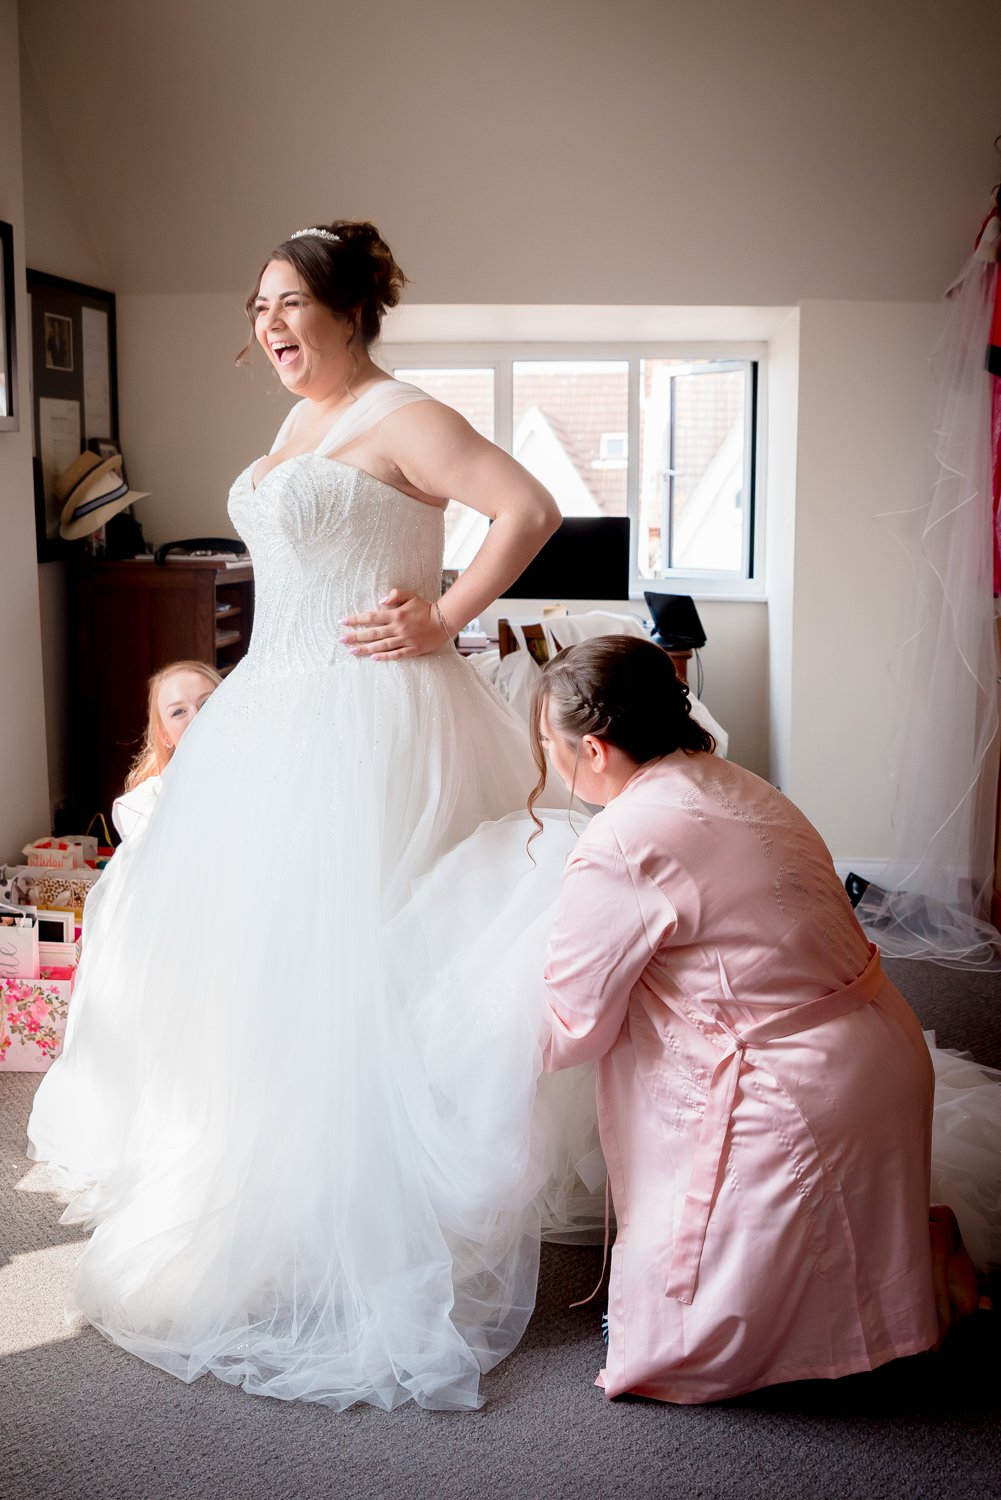 bride bridesmaids getting ready Essex Wedding Photographer Flowtography Weddings